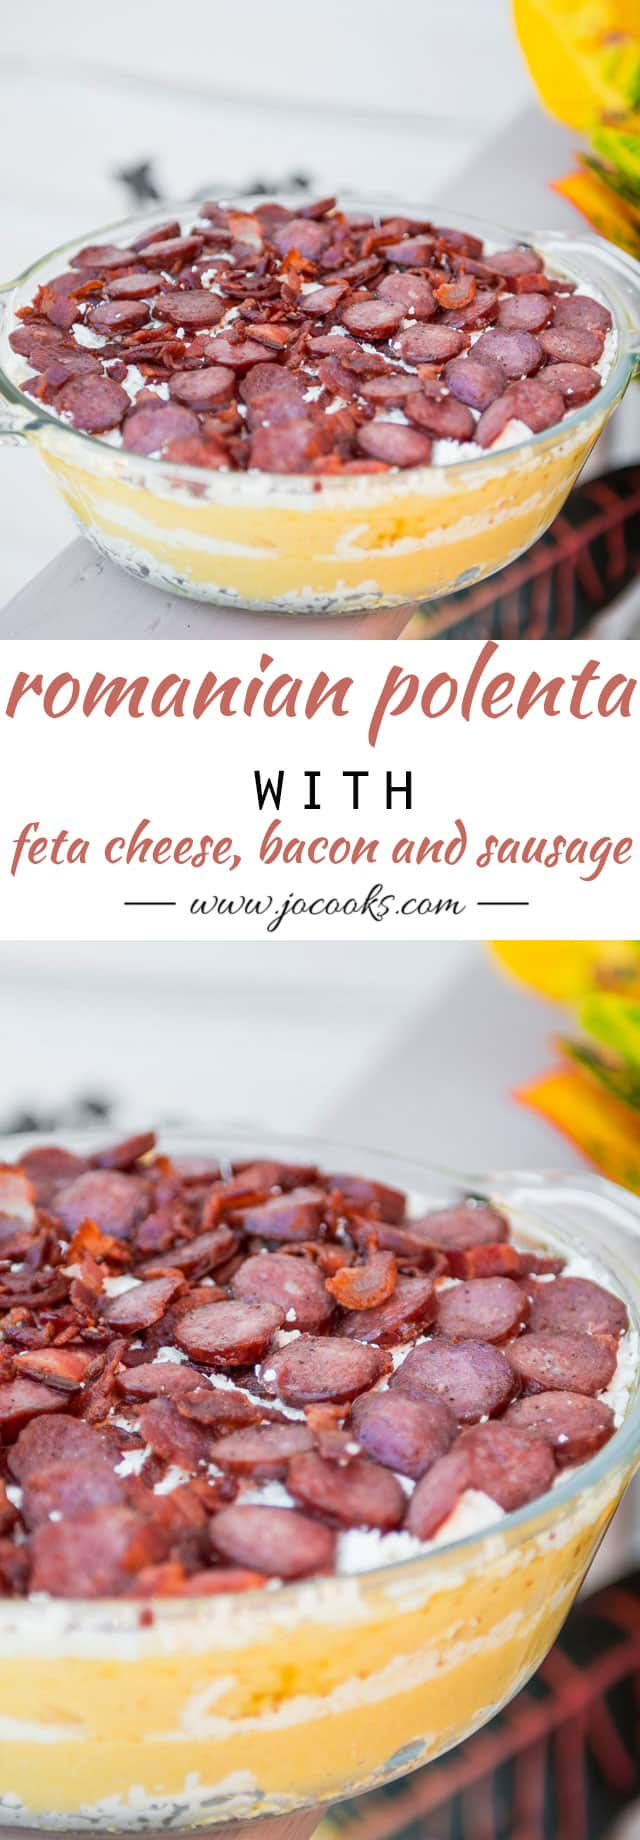 "This Traditional Romanian Polenta with Feta Cheese, Bacon and Sausage known as ""Mamaliga cu Branza in Paturi"" is a dish I've grown up with and am very fond of. It's hearty, delicious and satisfying."